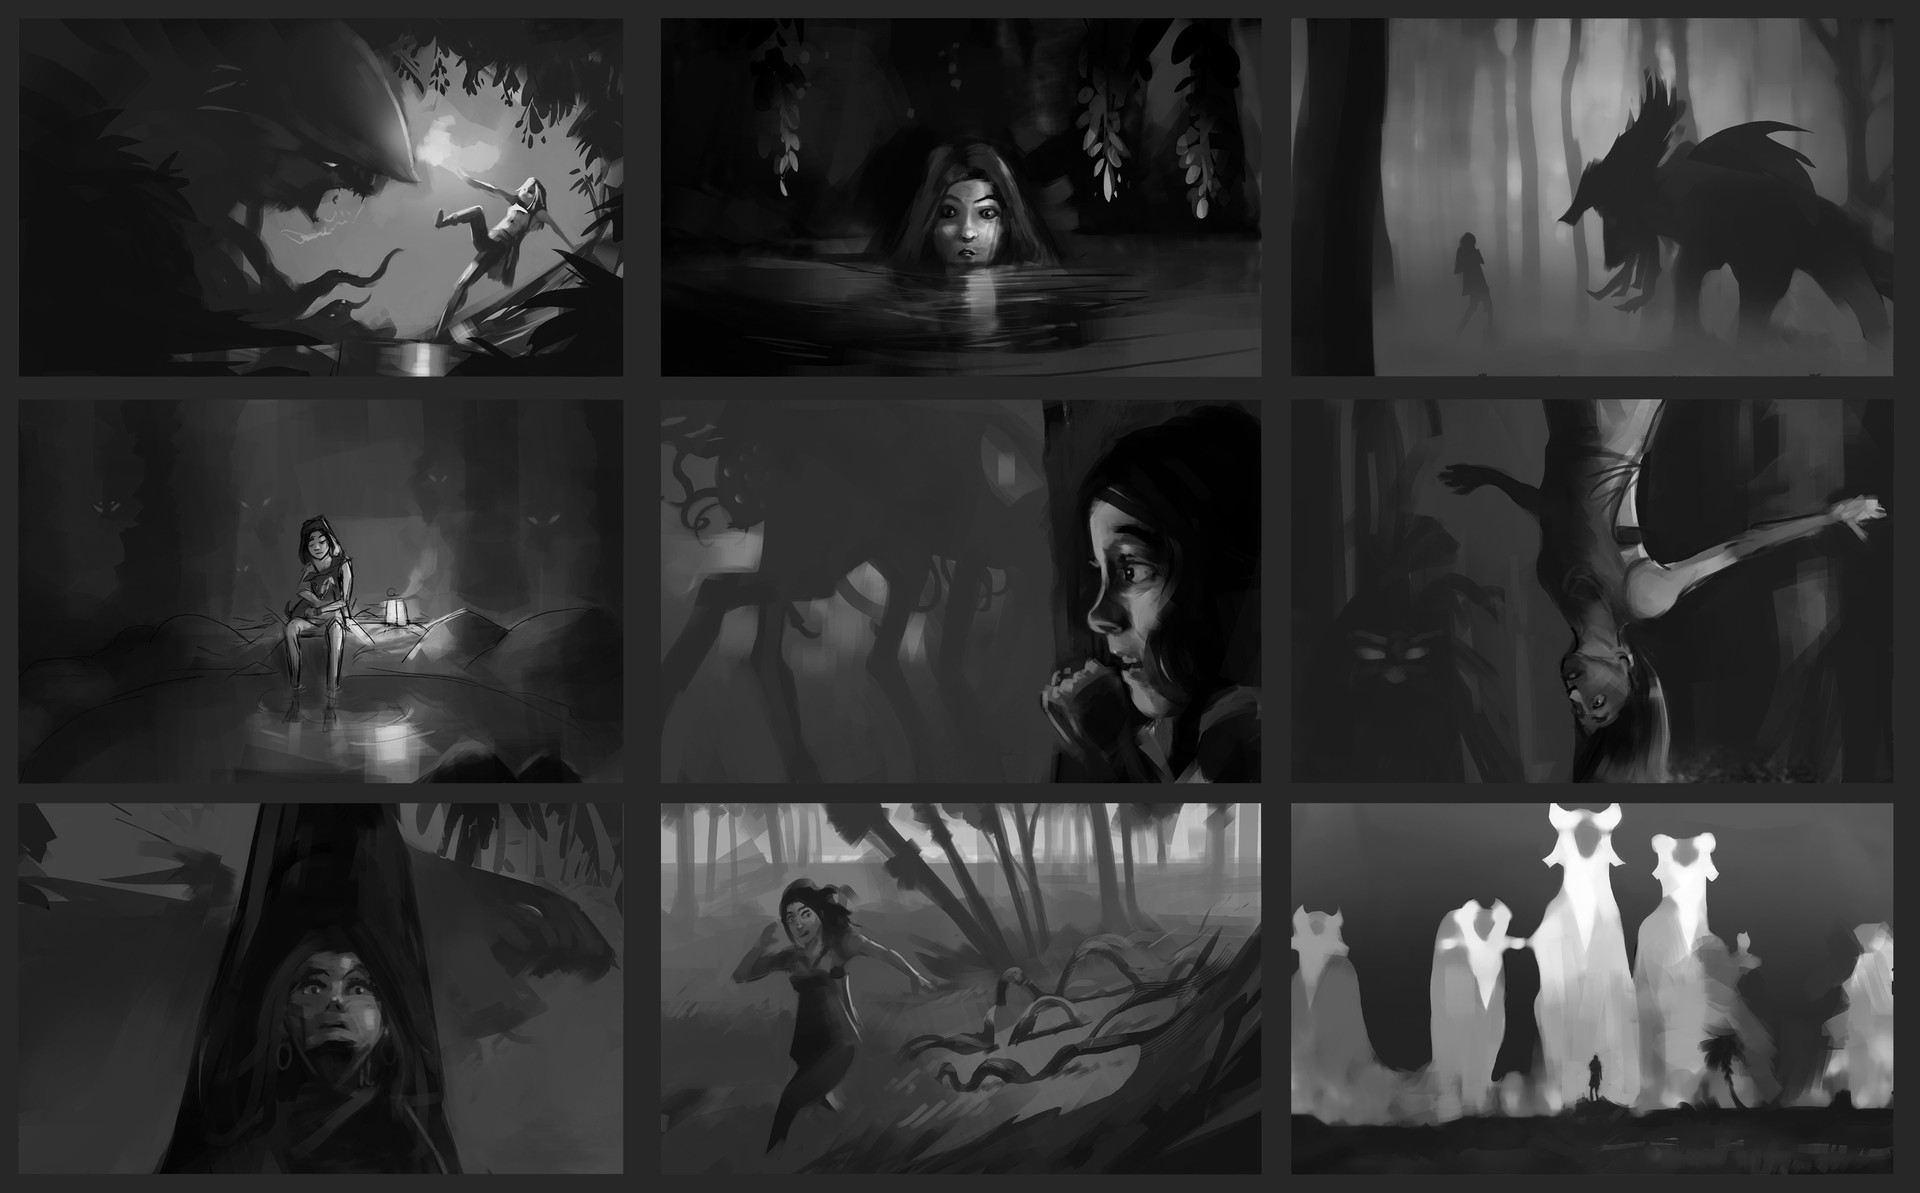 illustrations for a psychological thriller game i've been working on a while back.